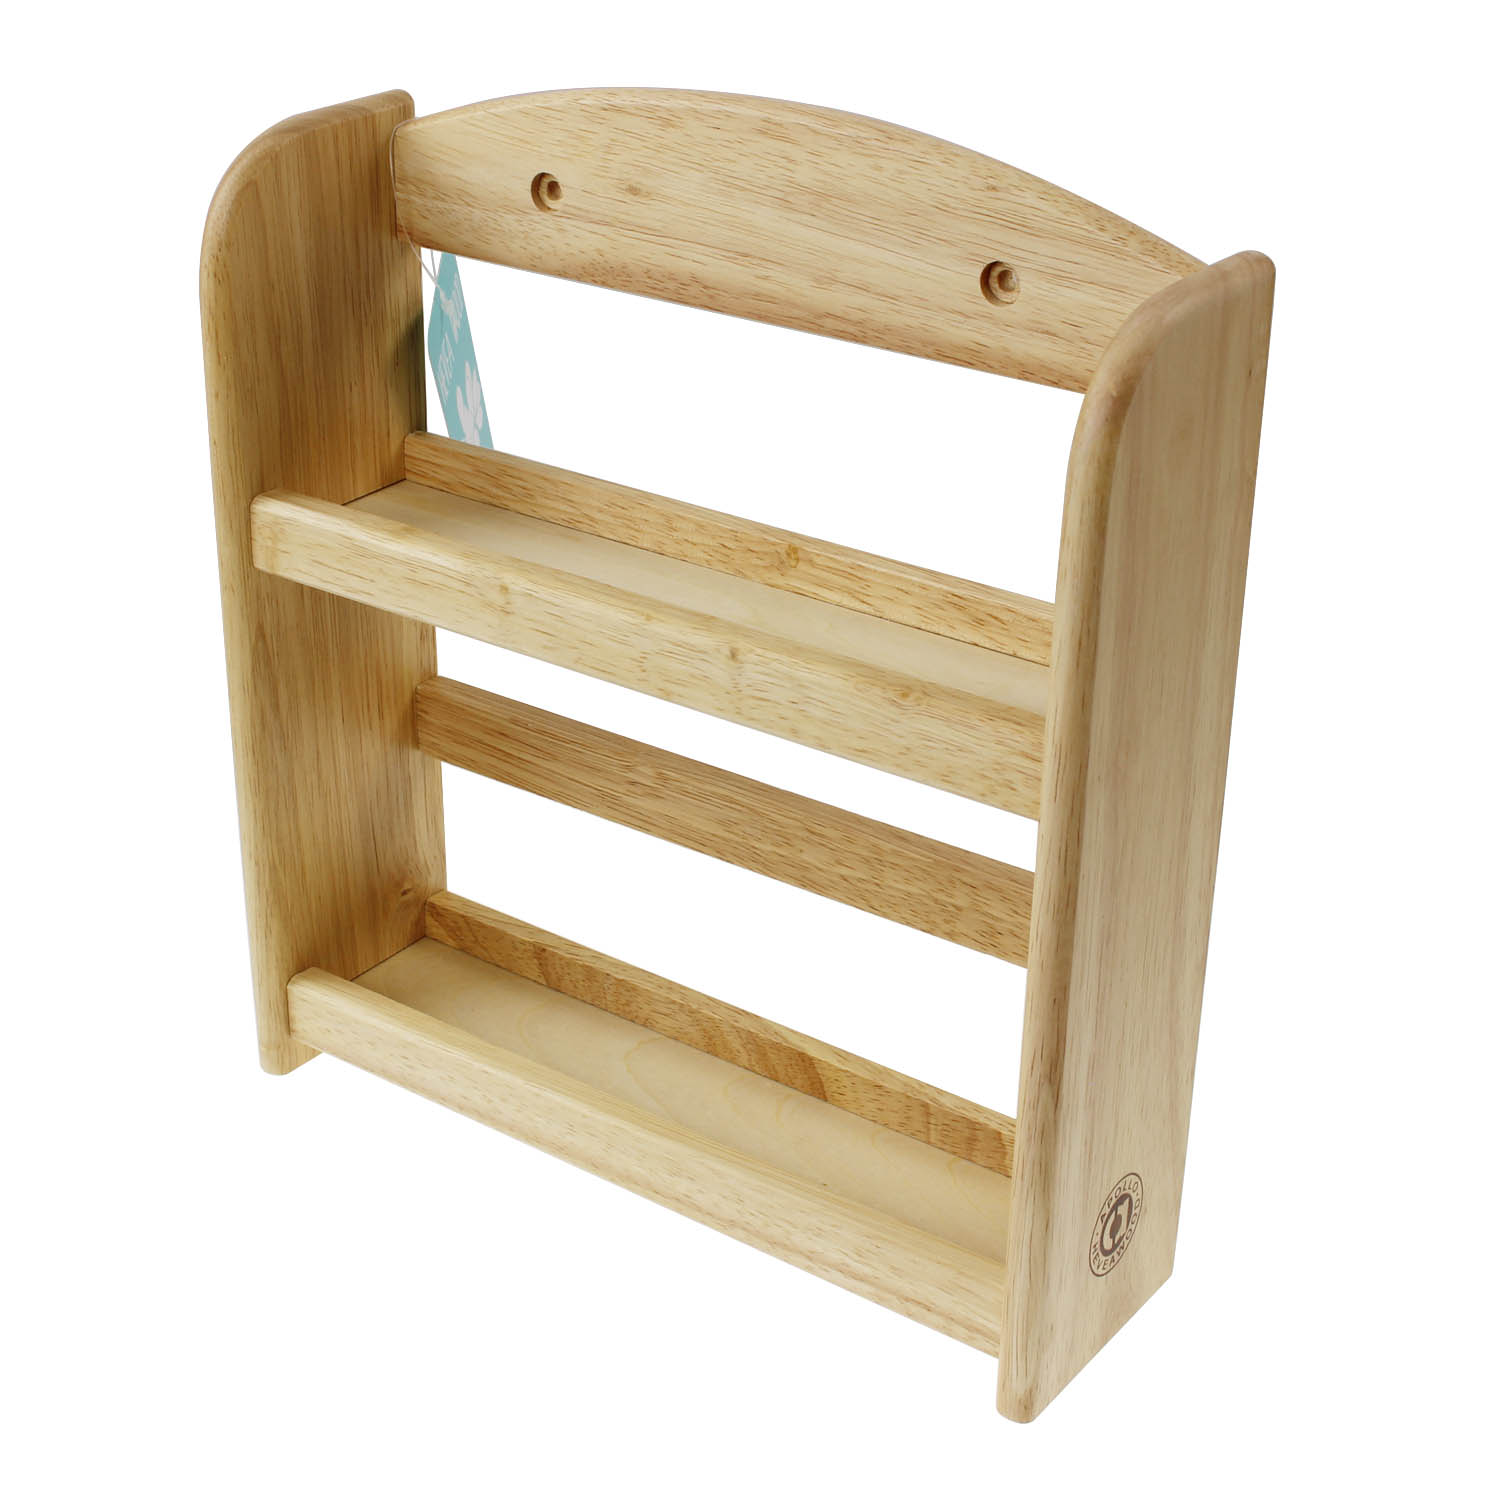 Woodworking Plans For Kitchen Spice Rack: 2 Tier Wall Mounted Hevea Natural Wood Kitchen Herb Spice